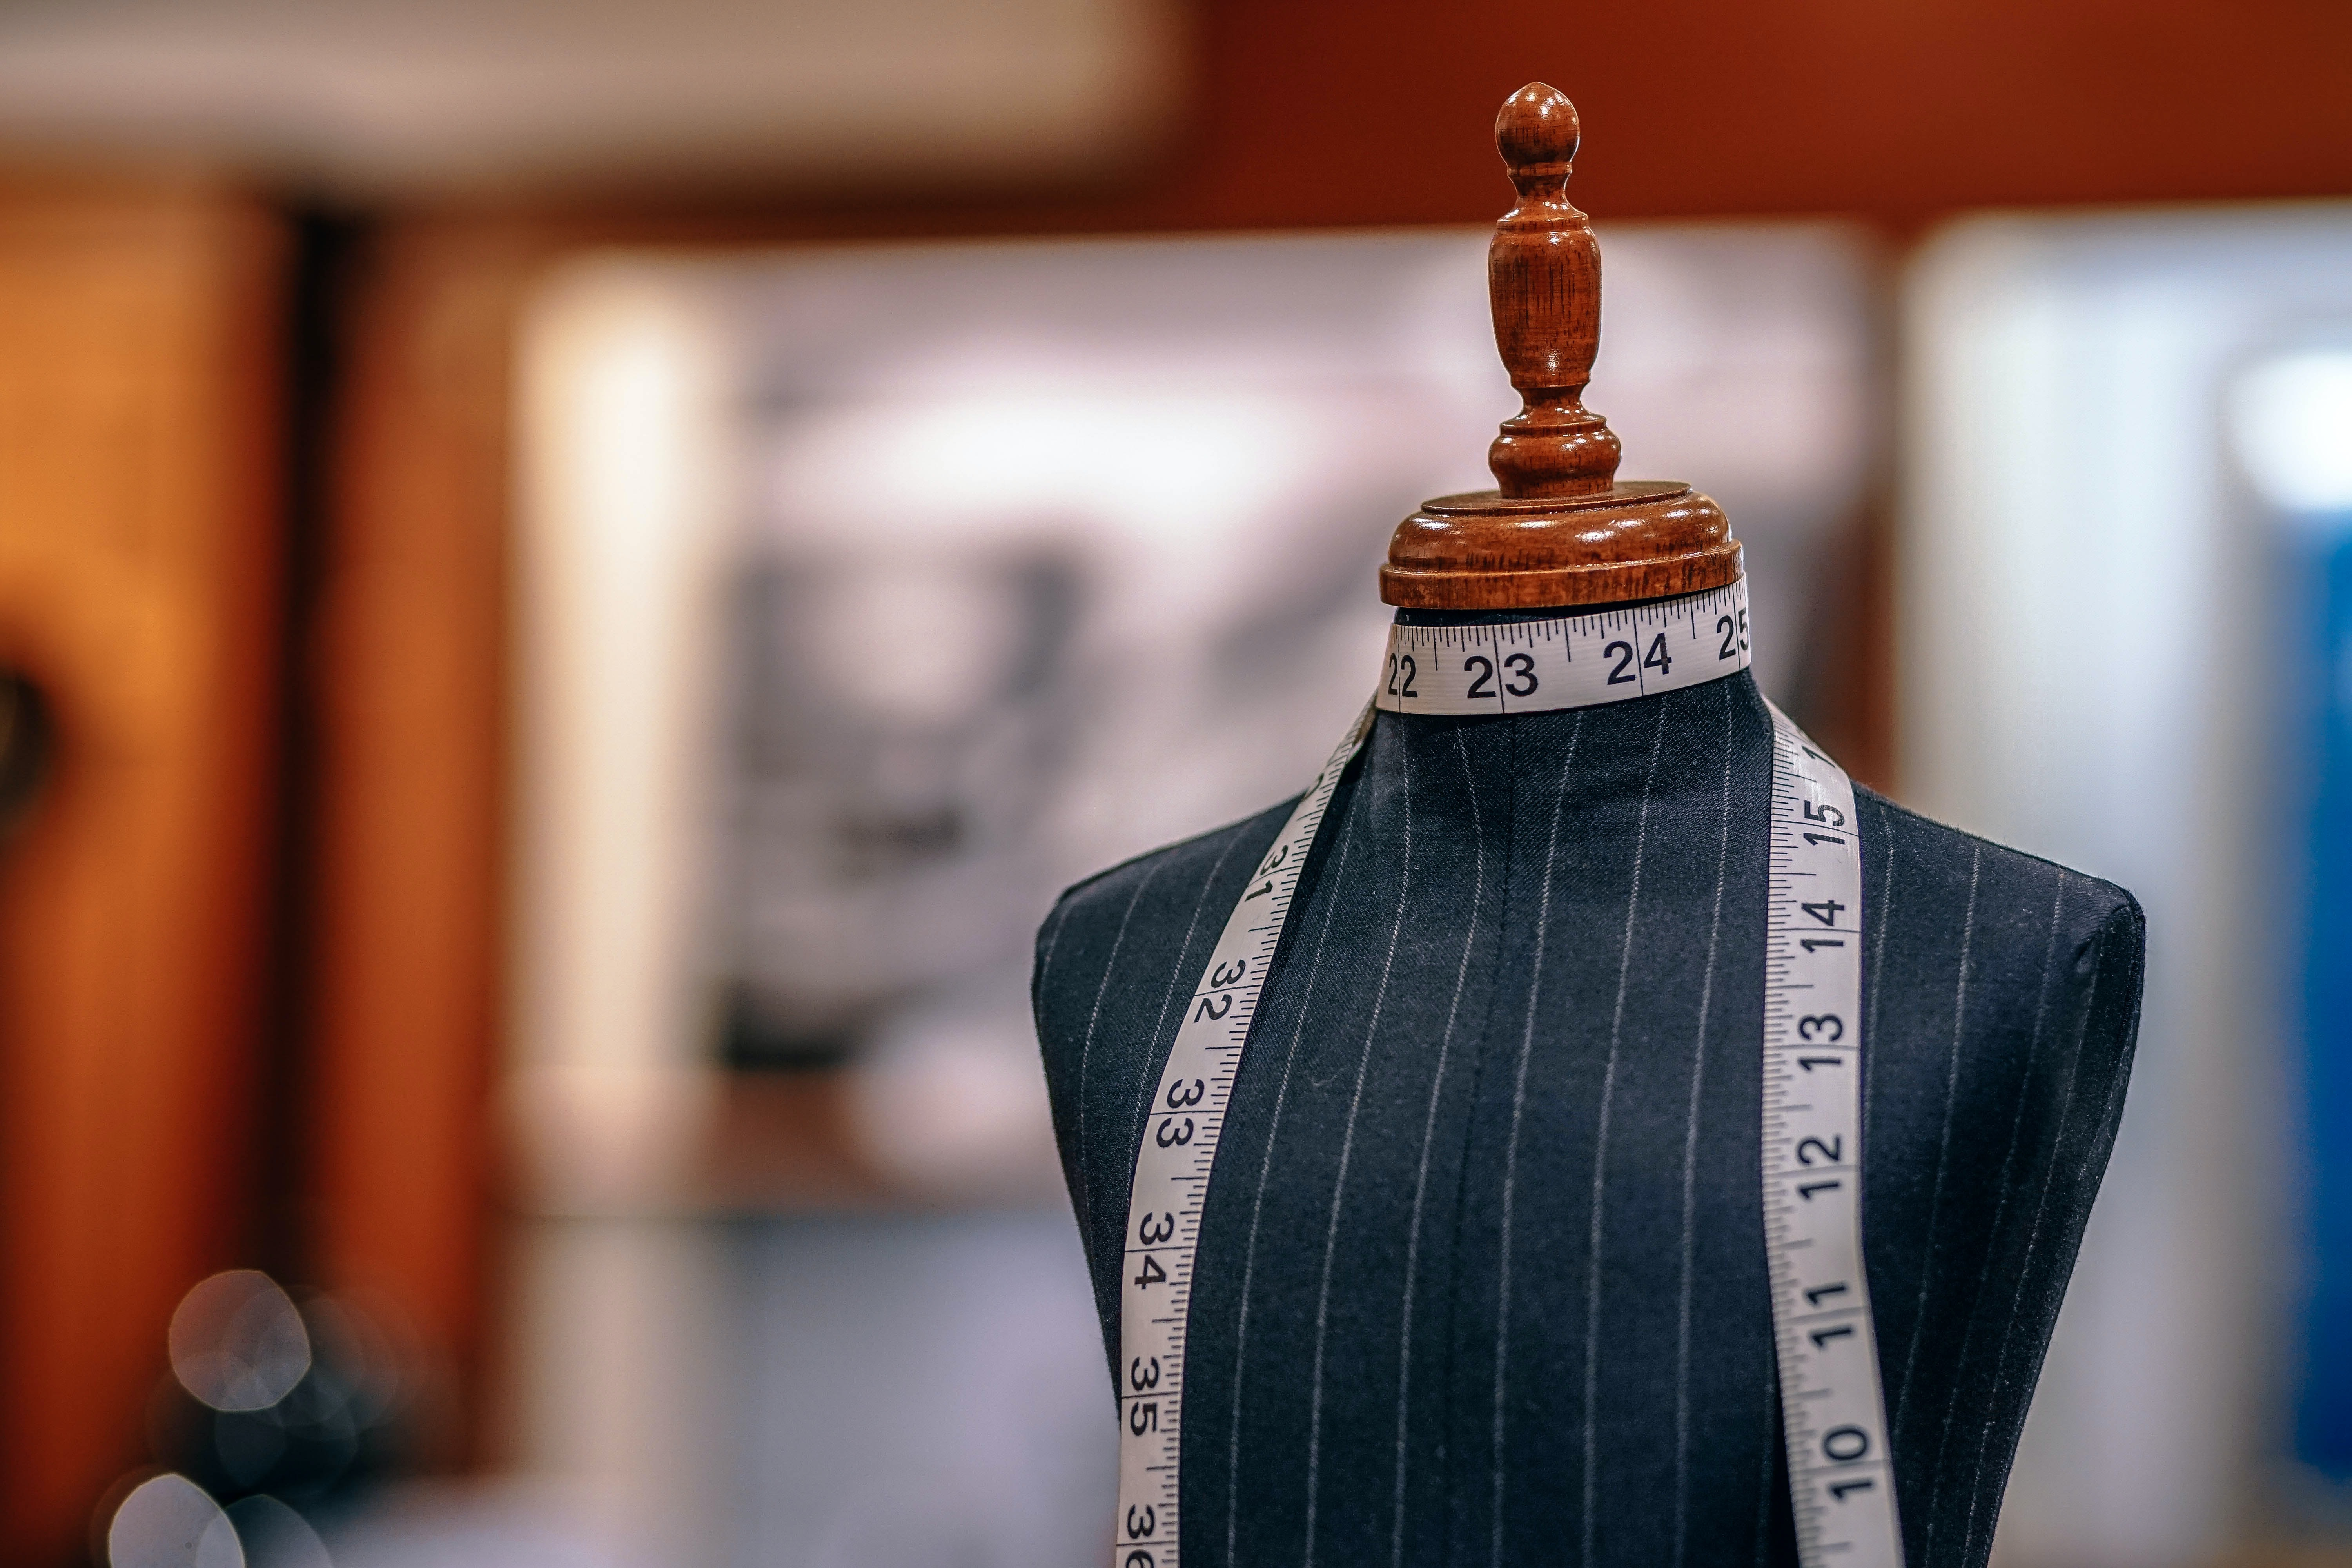 A mannequin with measuring tape wrapped around its neck